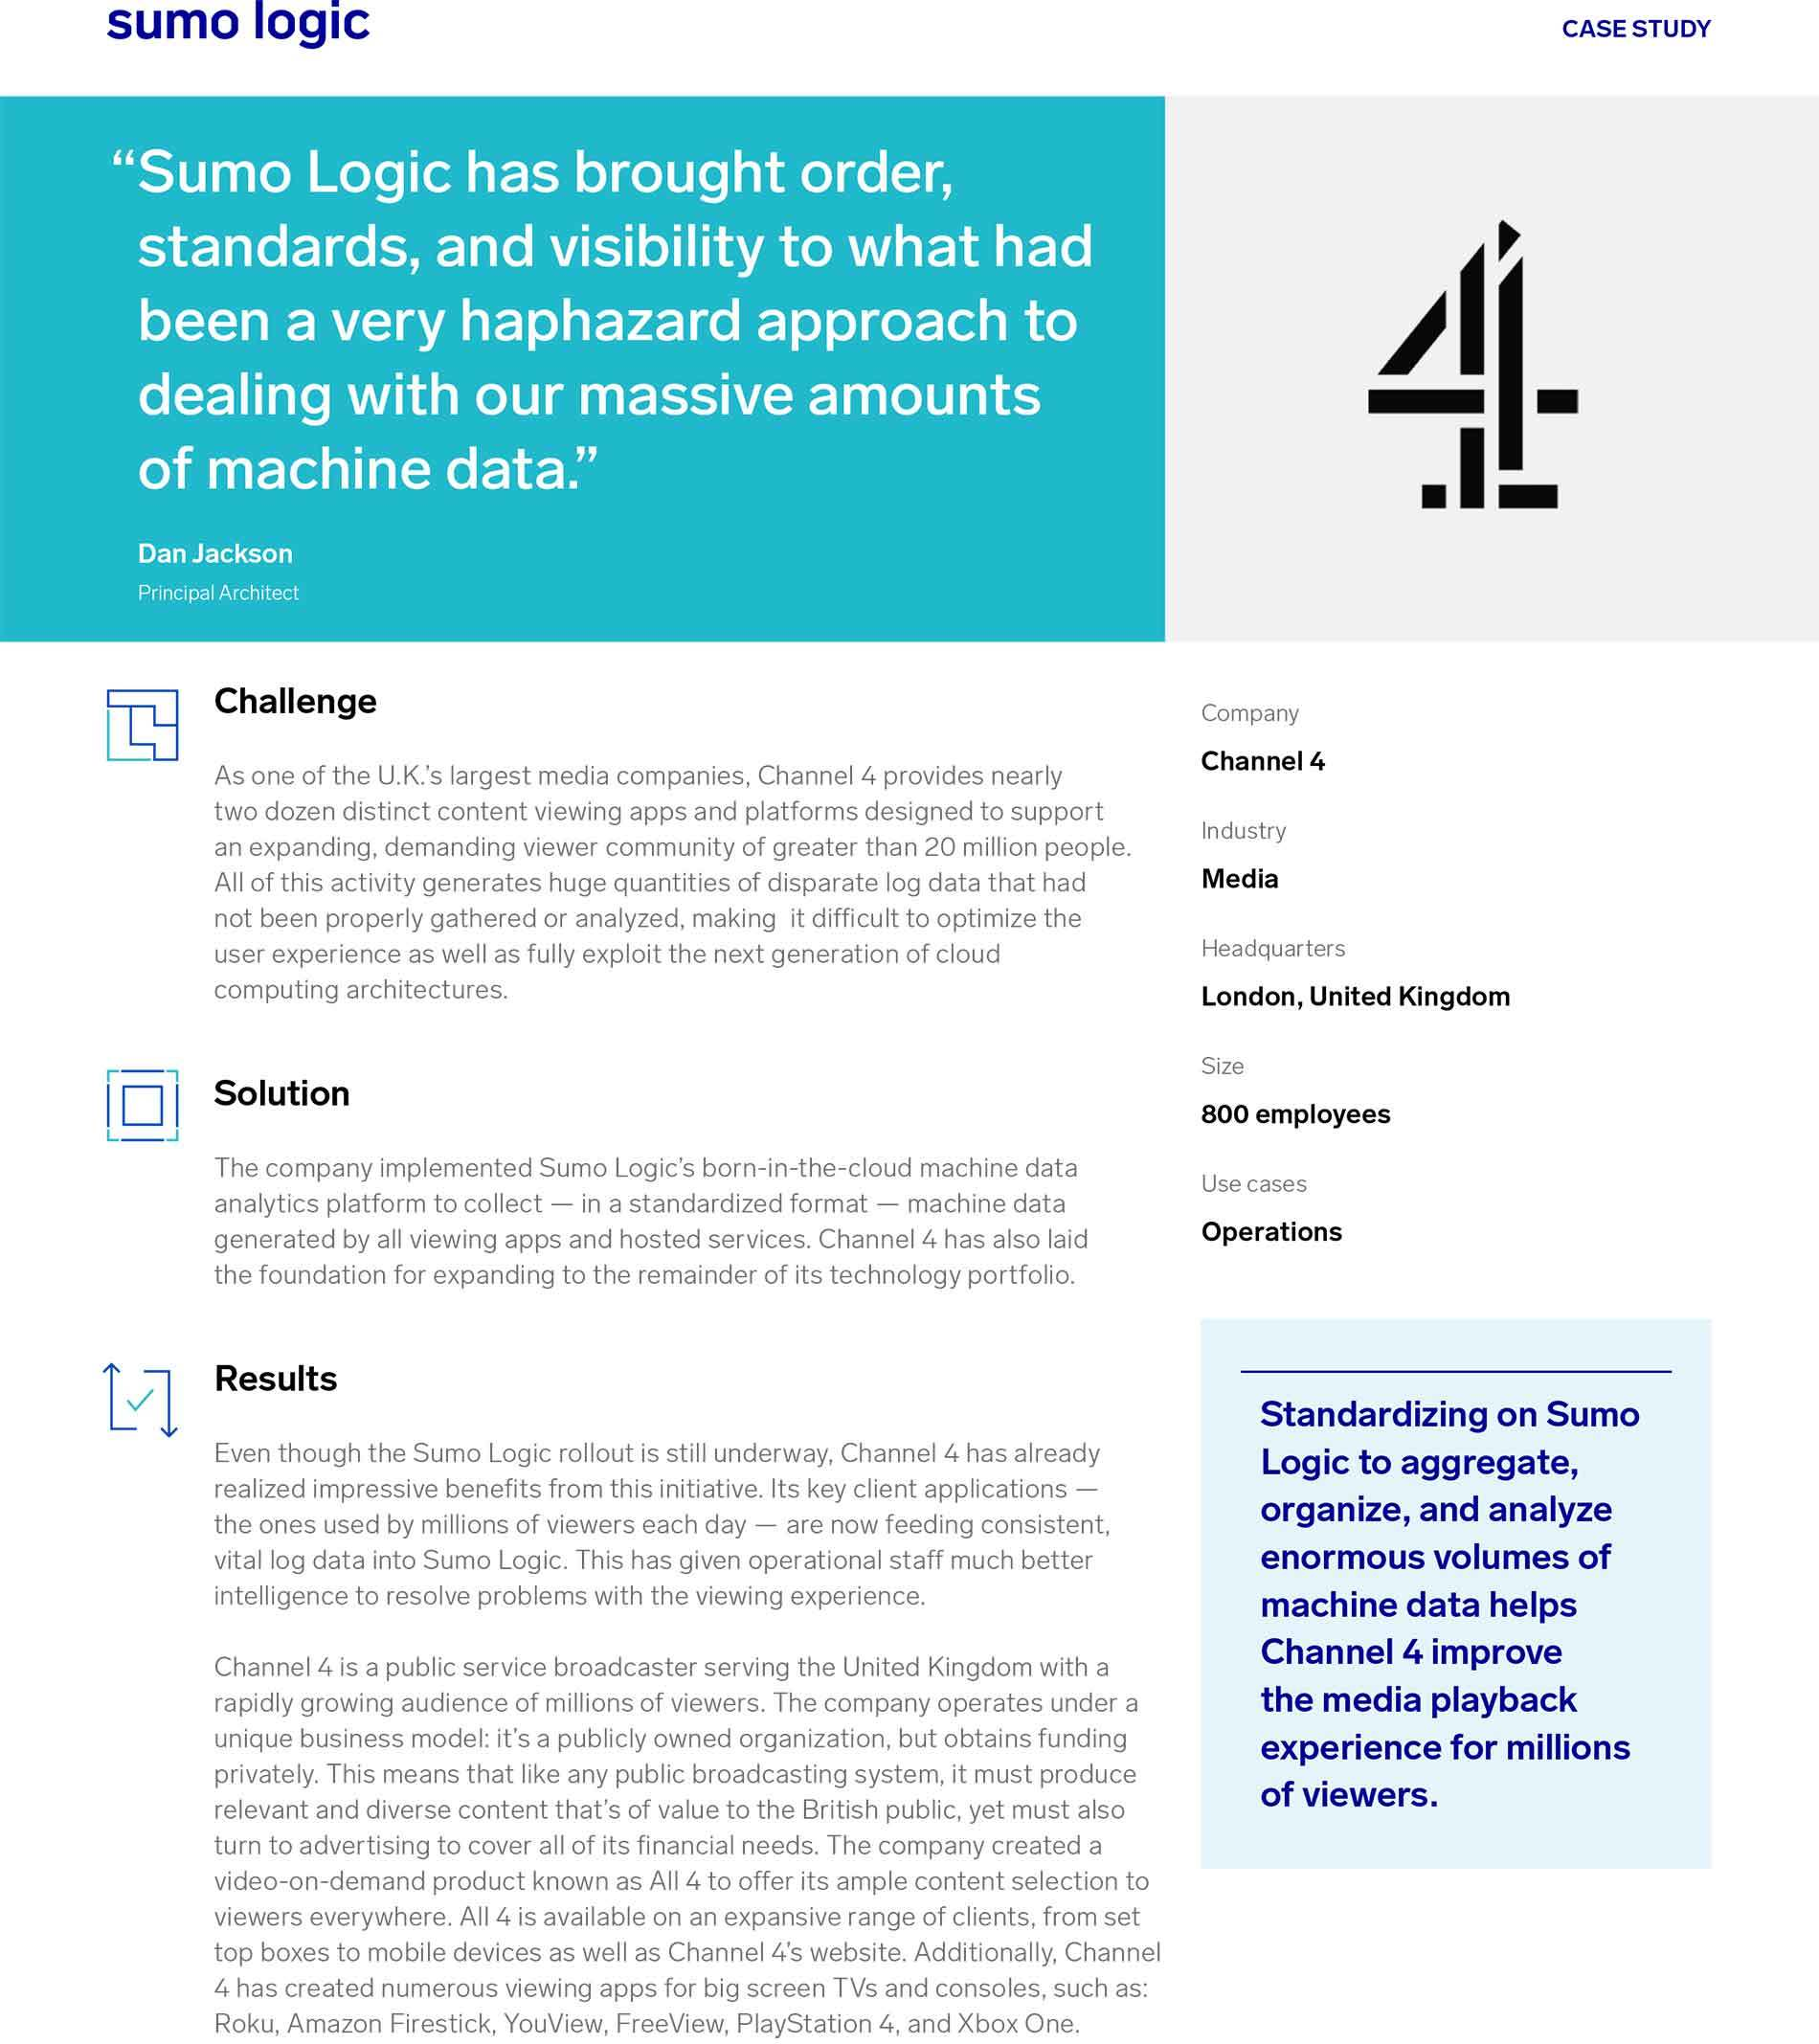 Channel 4 Case Study